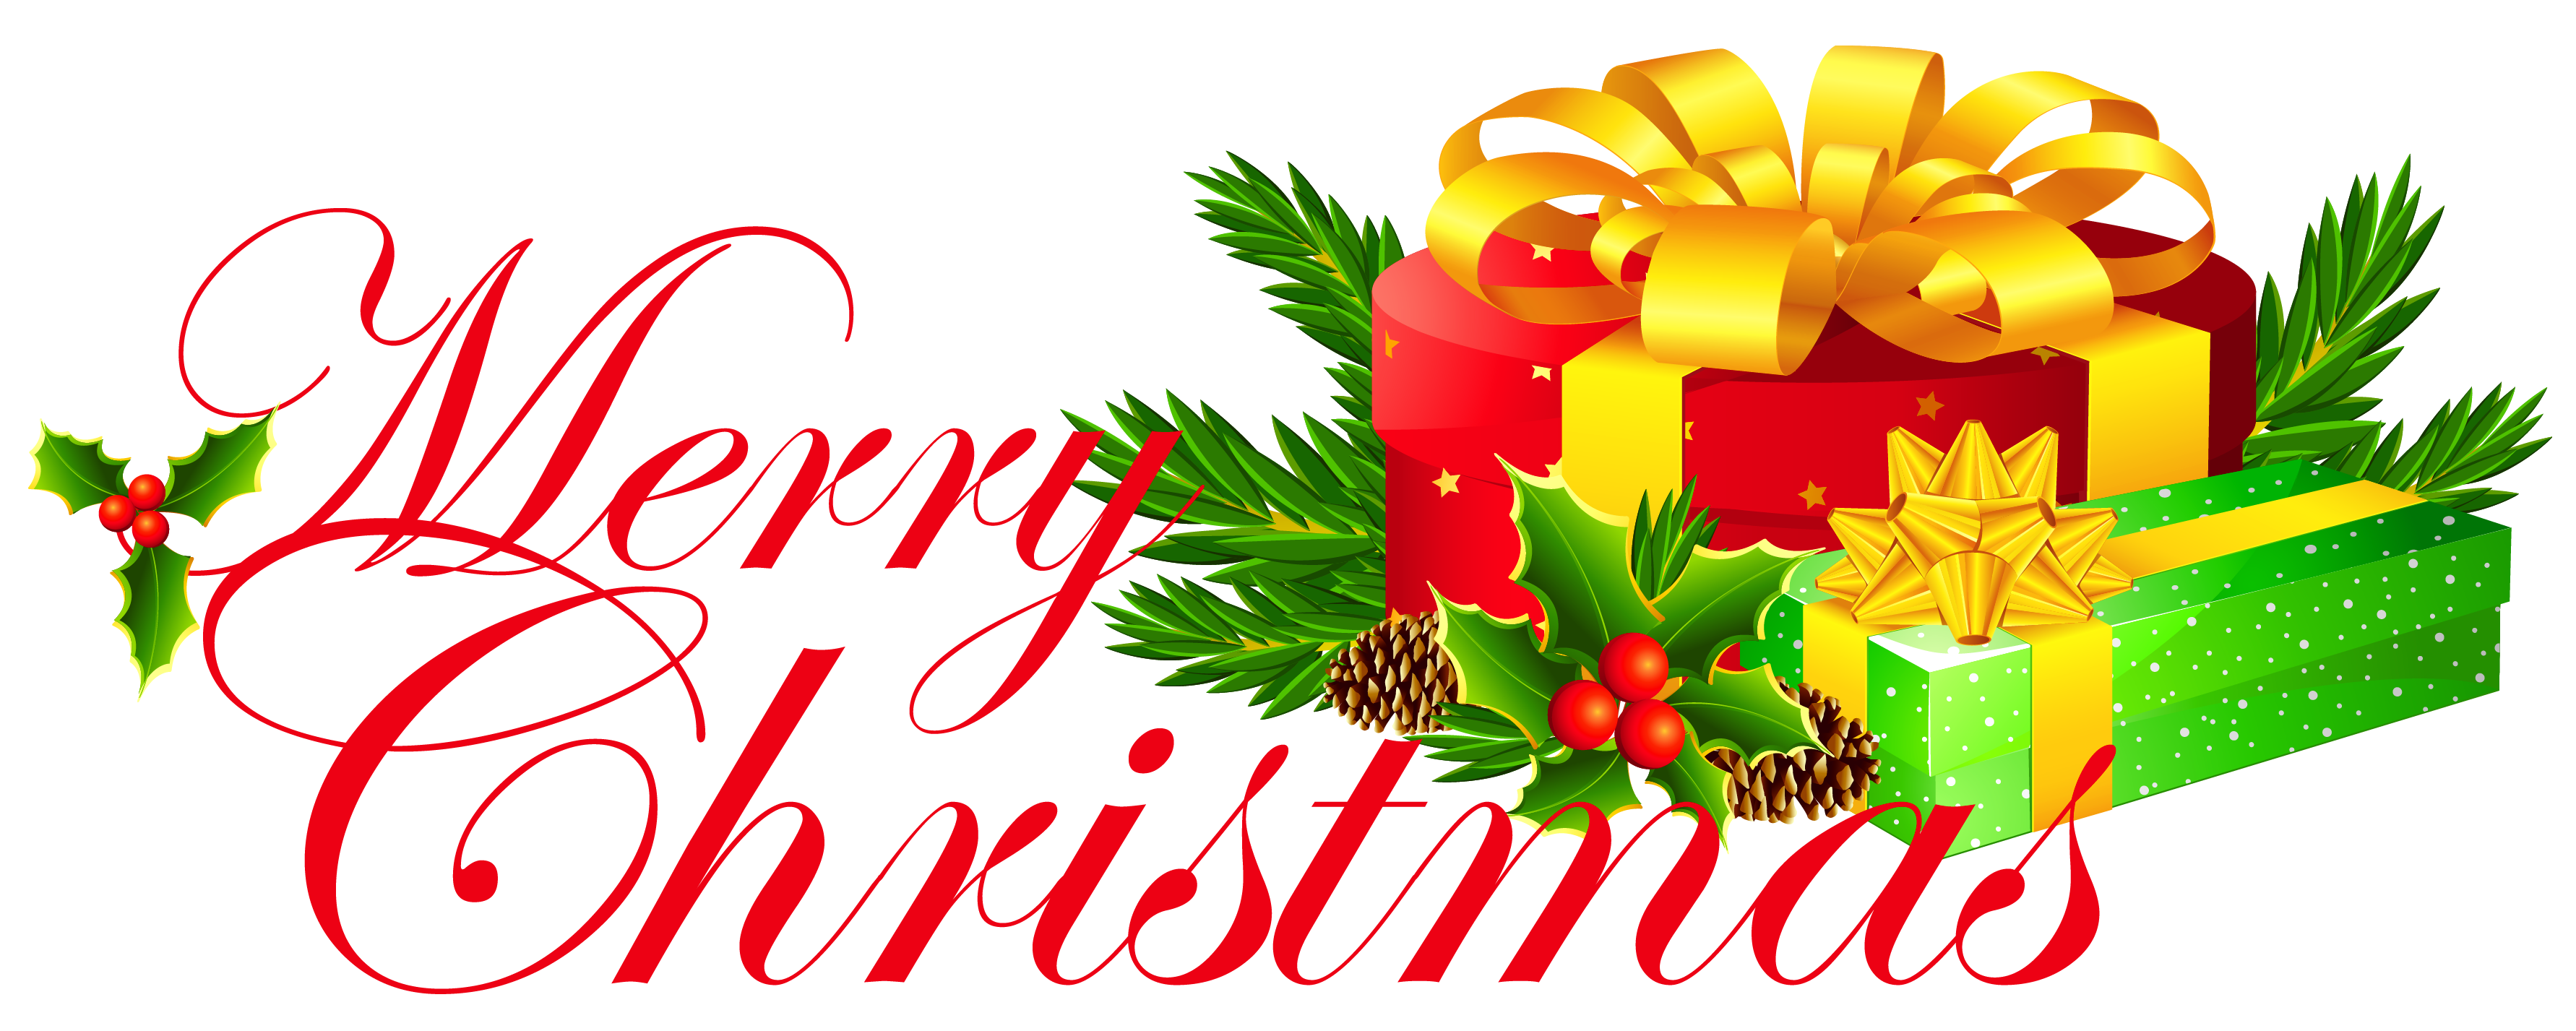 vector freeuse Merry clipart. Transparent christmas with presents.